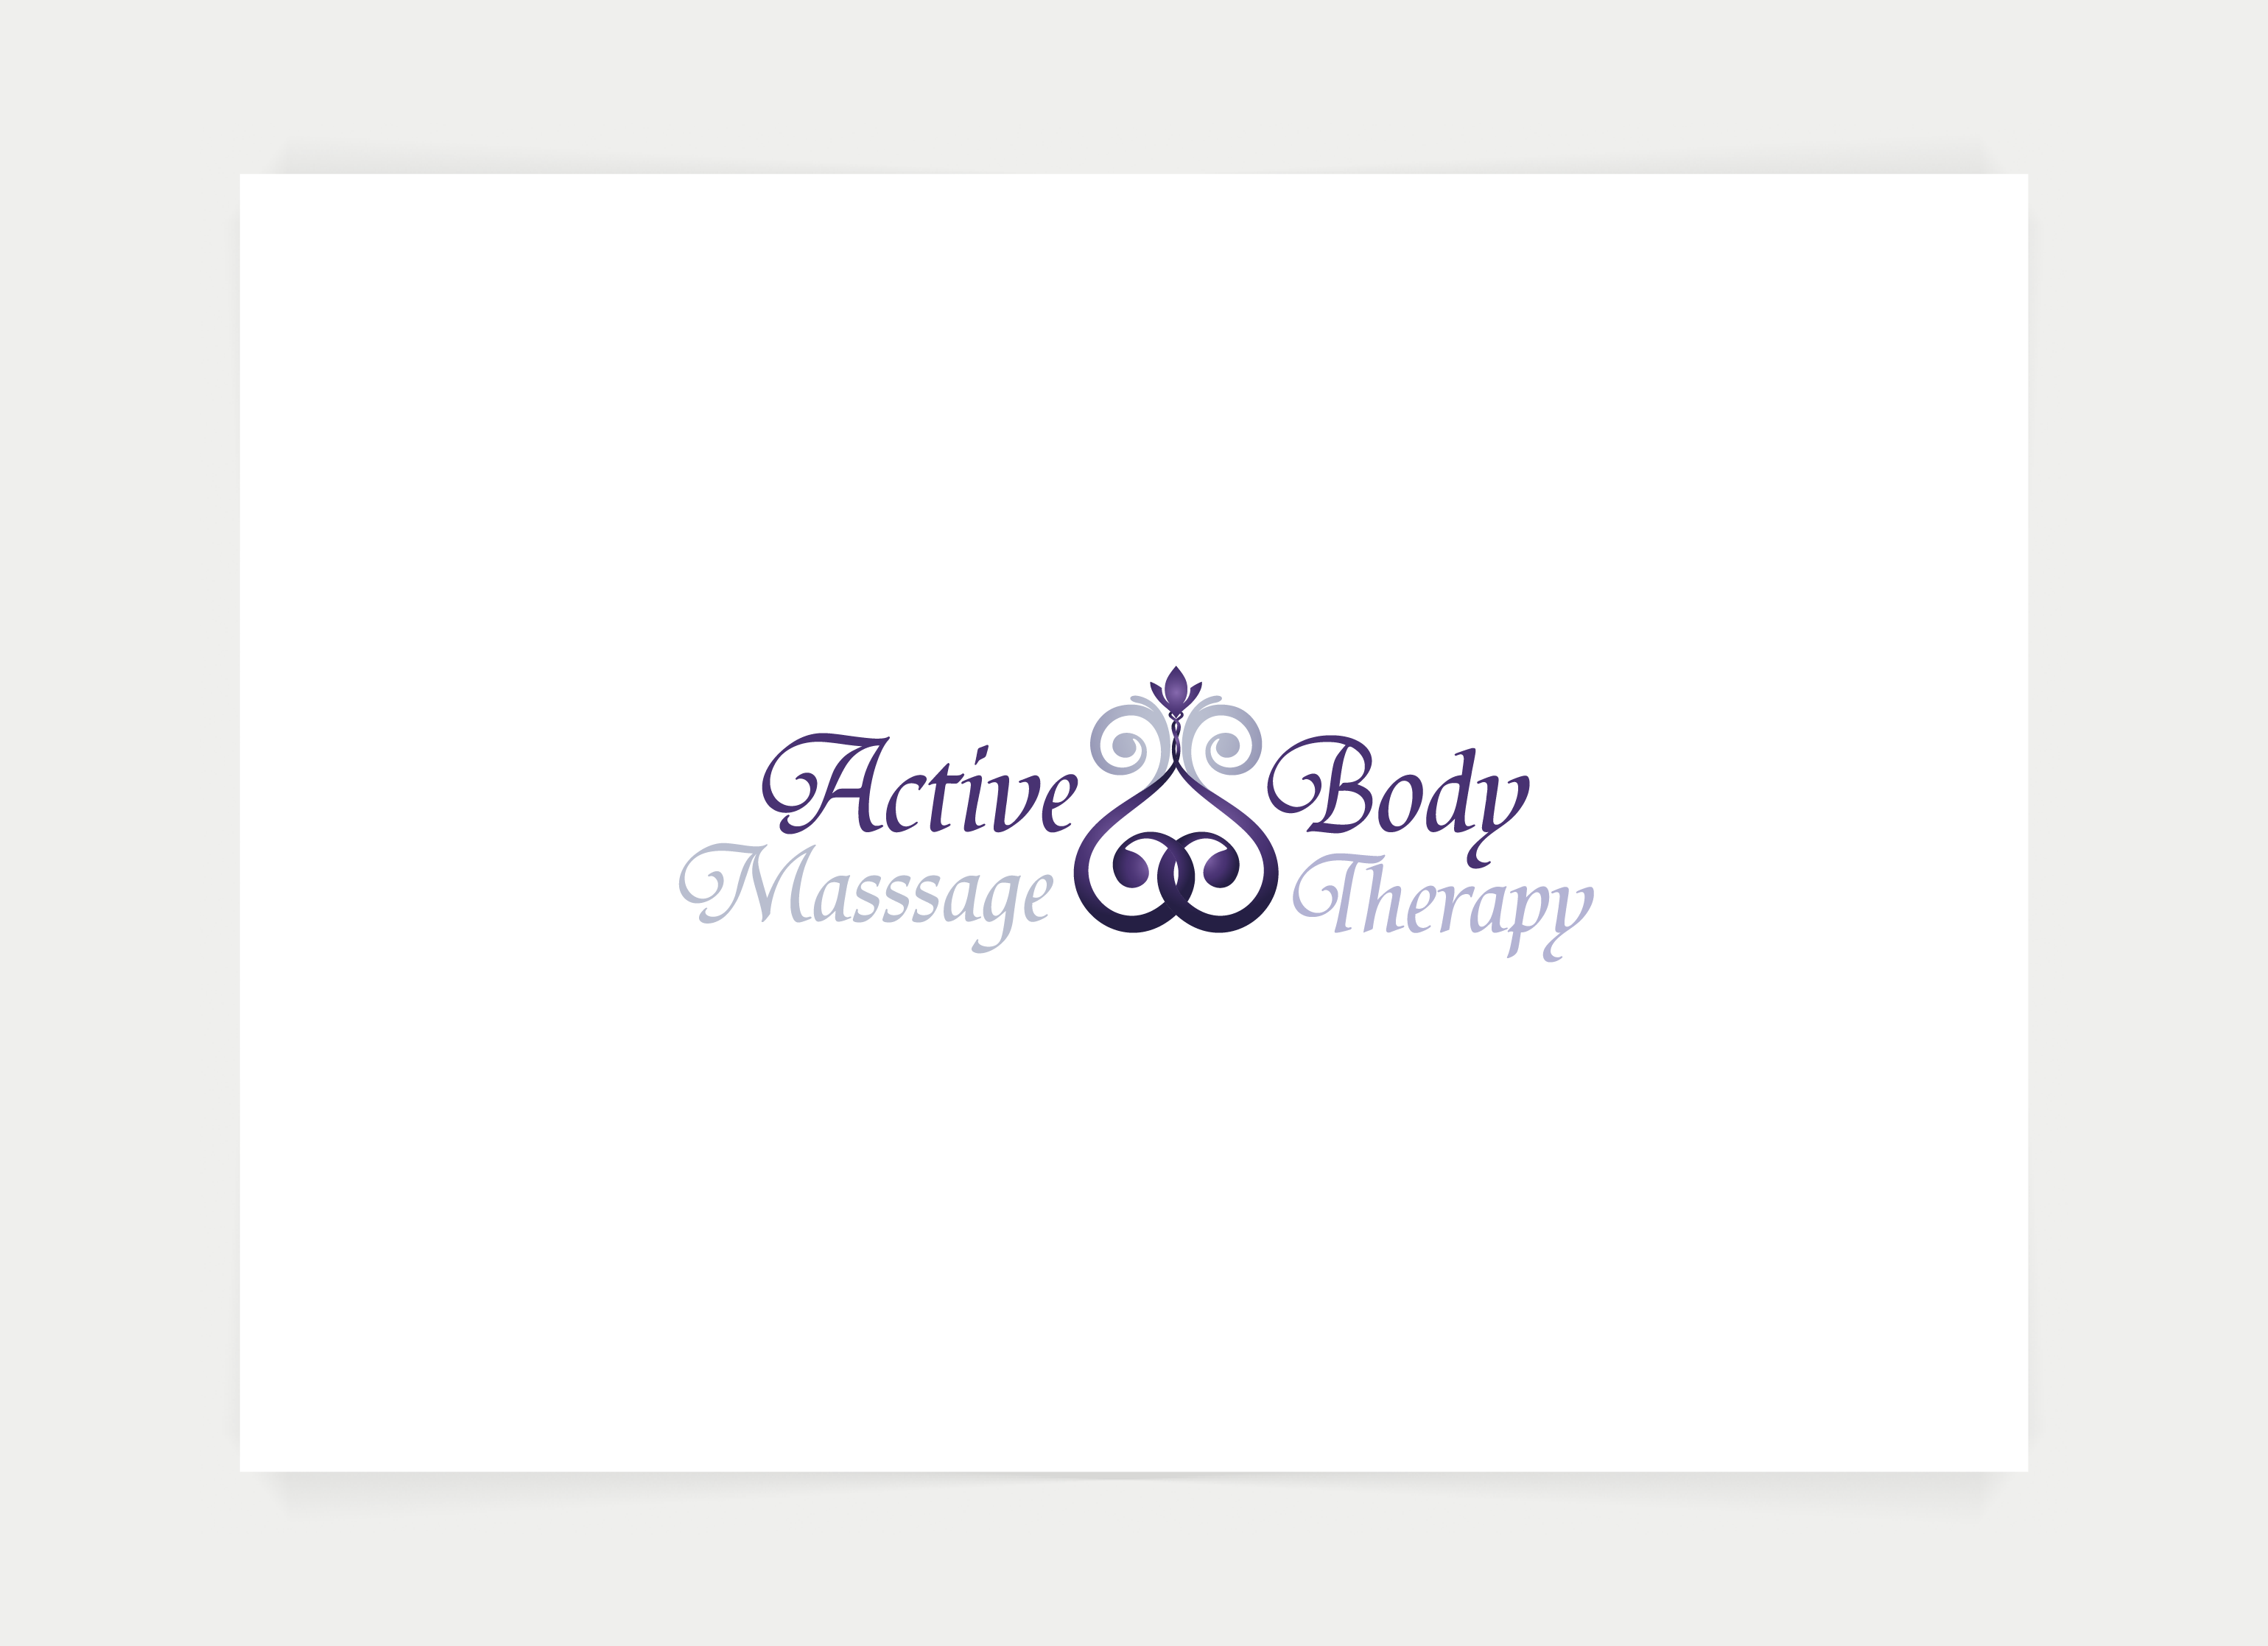 Active Body Massage Therapy - Massage Therapy Logo